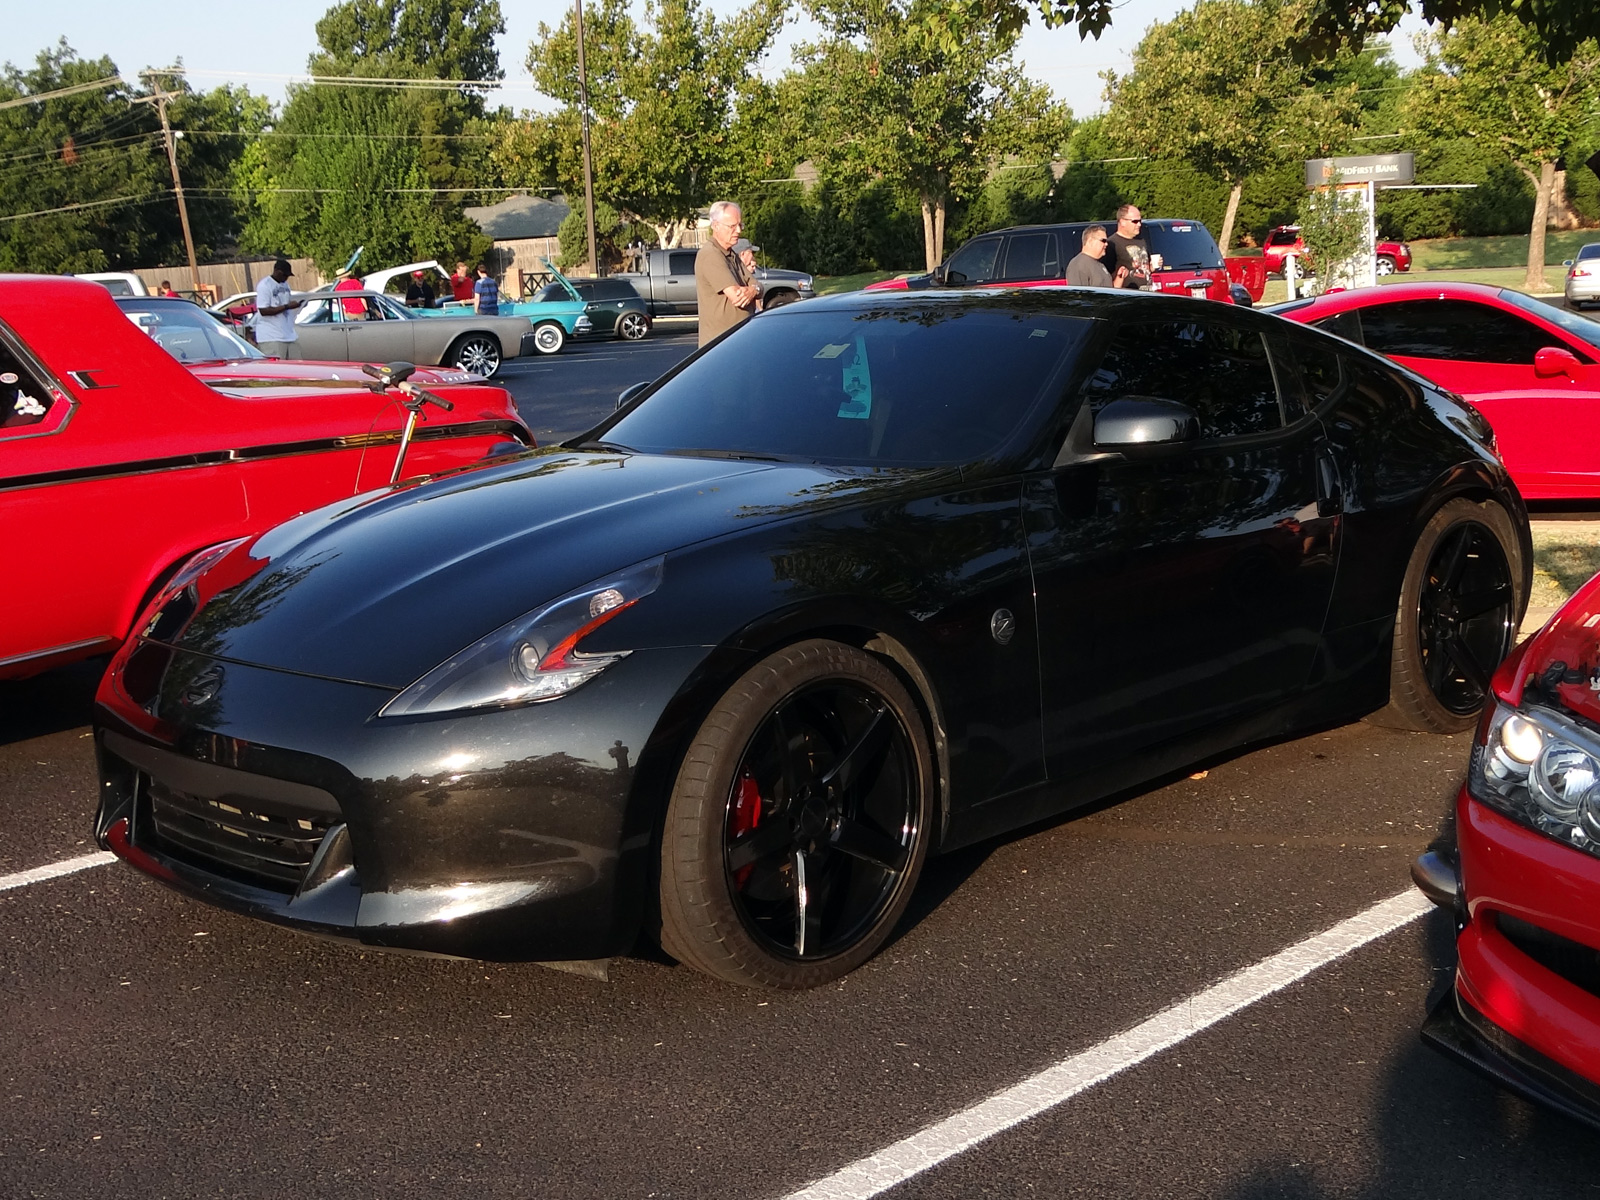 Amazing All Black Murdered Out Cars - Zero To 60 Times